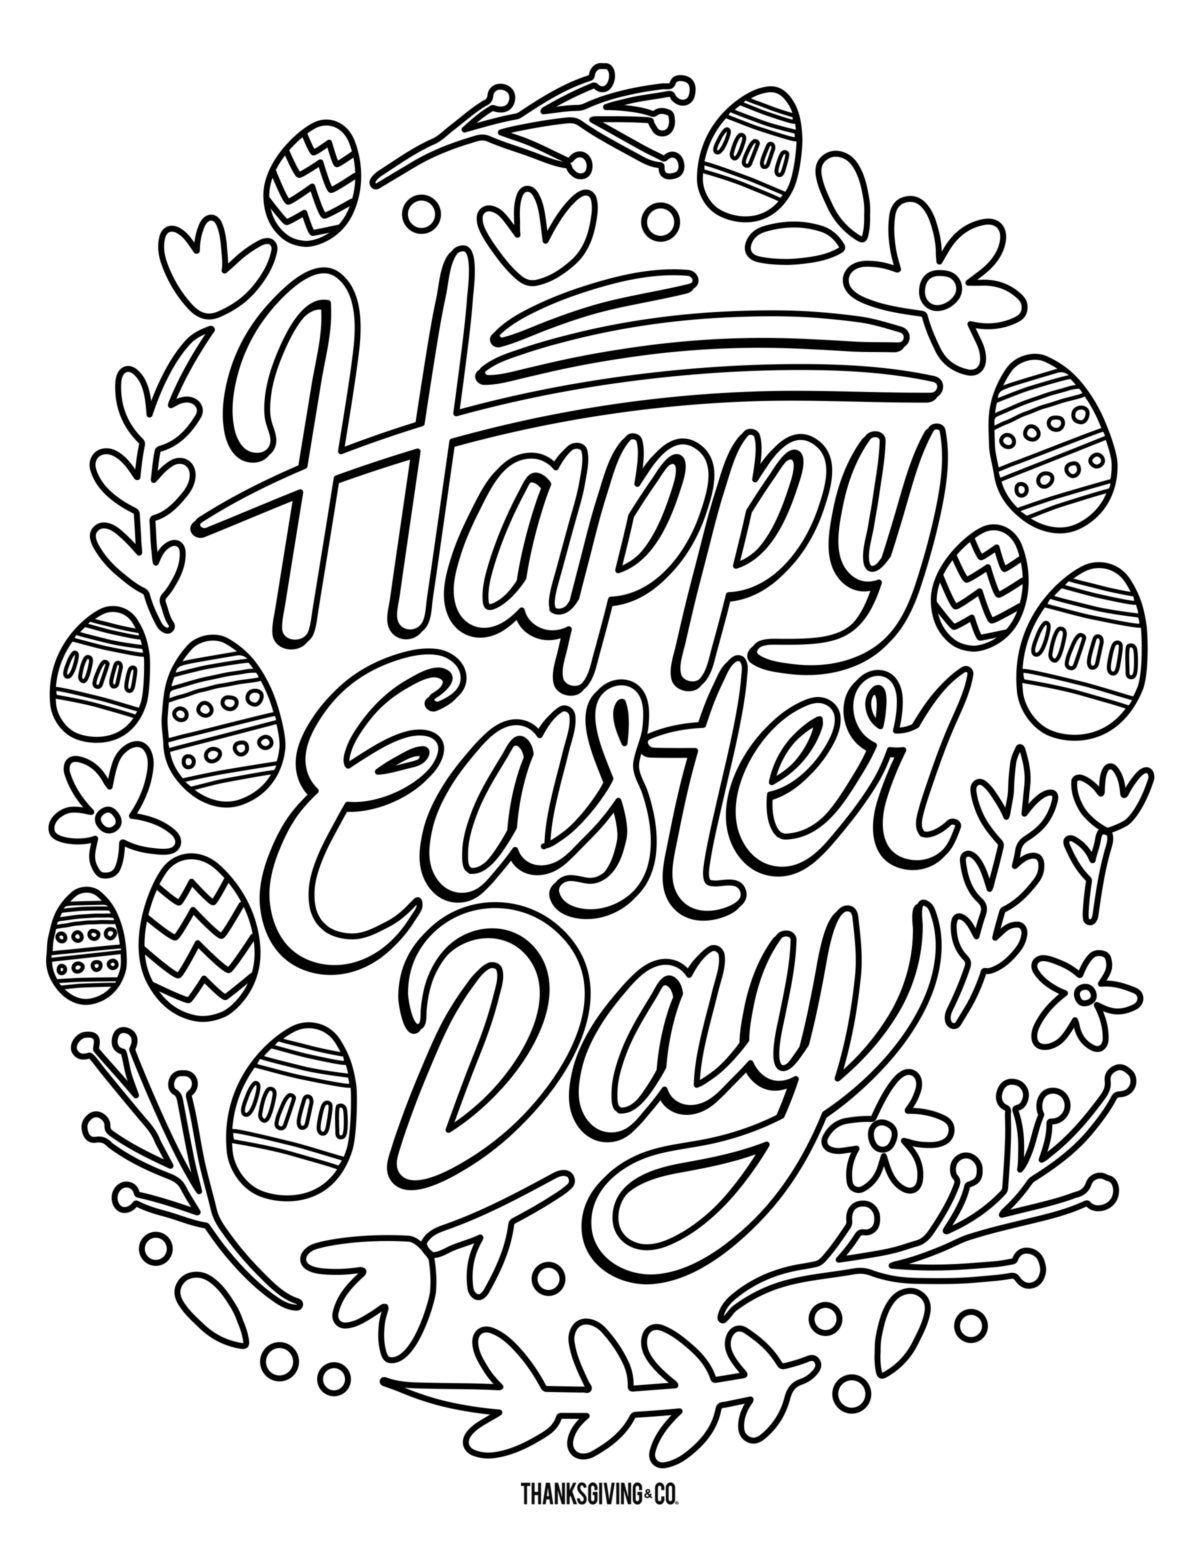 5 Free Printable Easter Coloring Pages For Adults That Will Relieve Holiday Stress Free Easter Coloring Pages Easter Coloring Pages Printable Easter Coloring Sheets